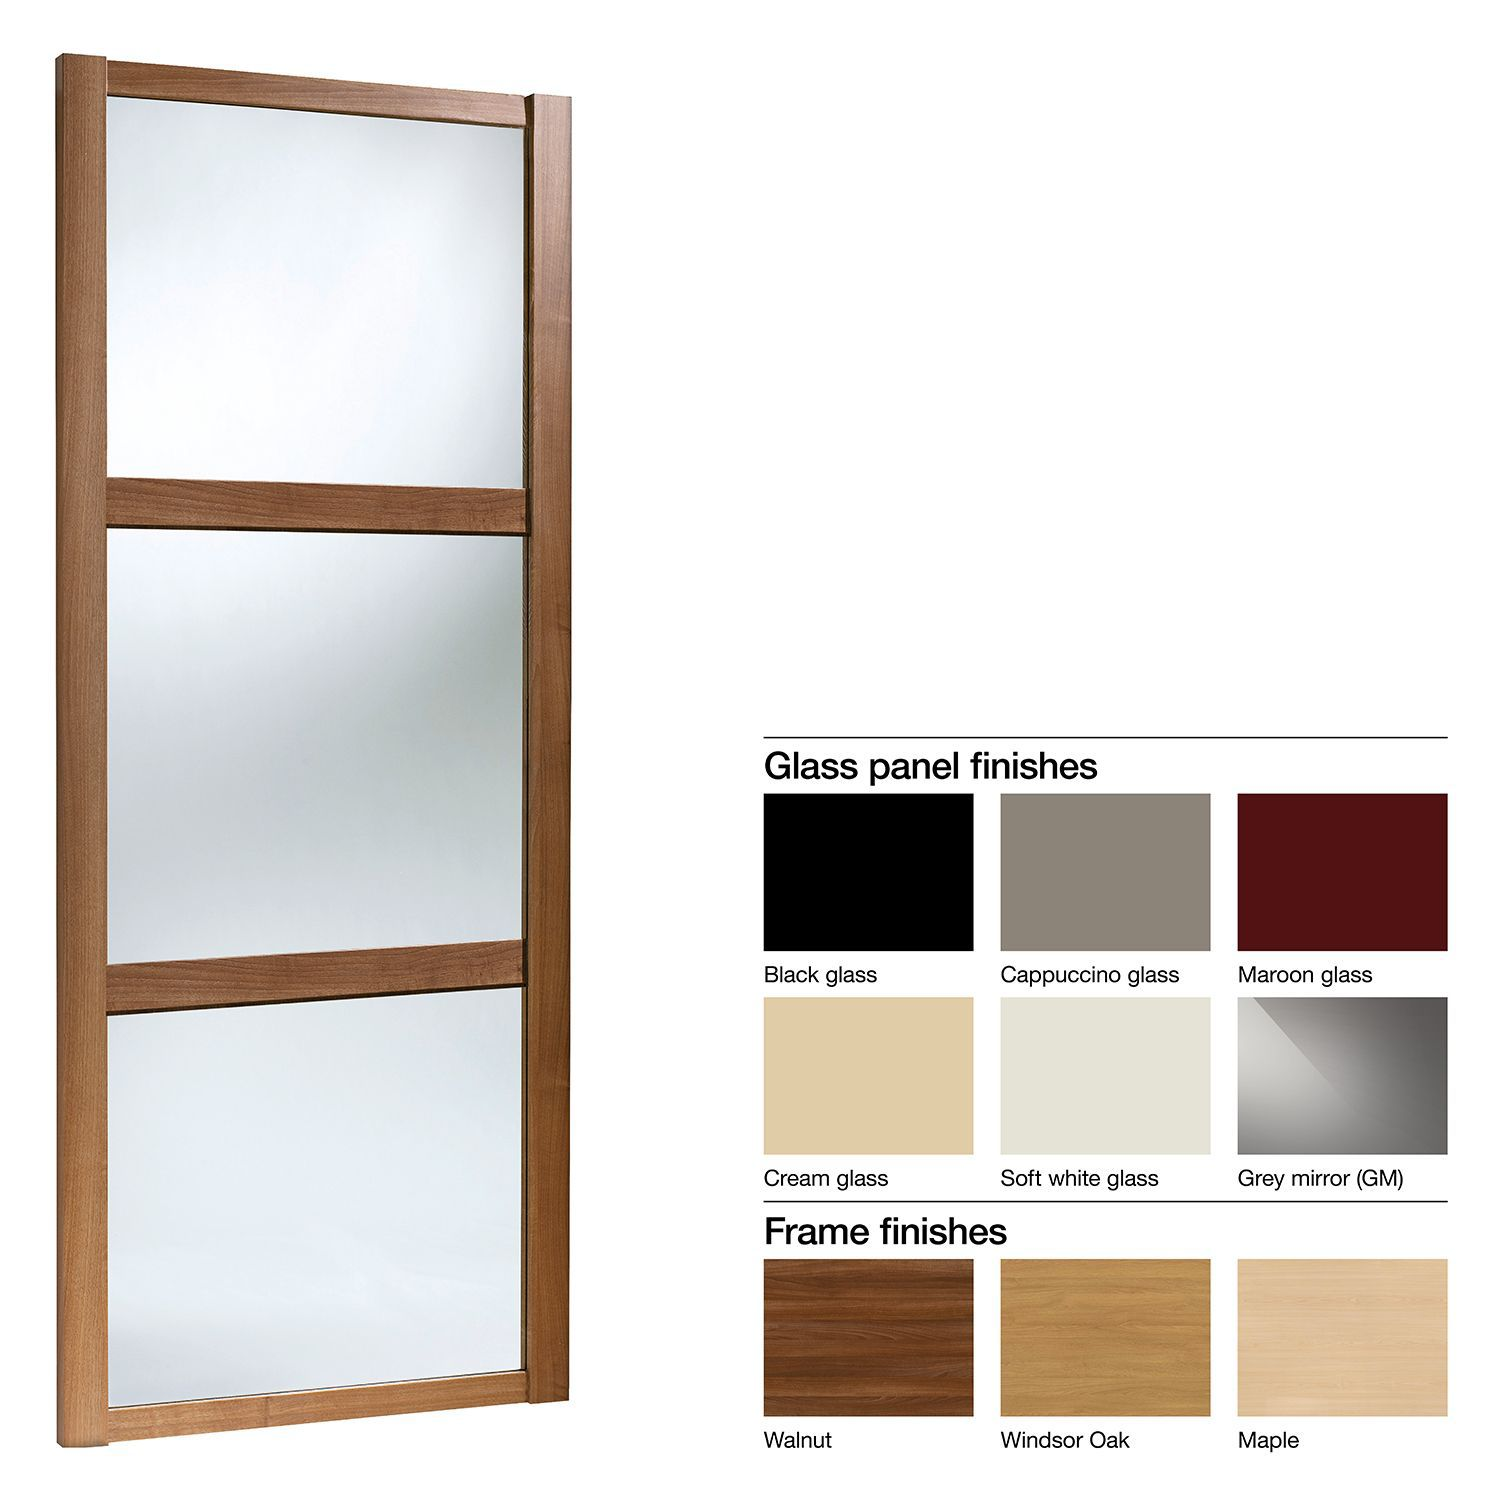 Made to measure sliding wardrobes glass sliding doors mirror - Made To Measure Shaker 3 Panel Glass Mirror Sliding Wardrobe Door W 741 913mm